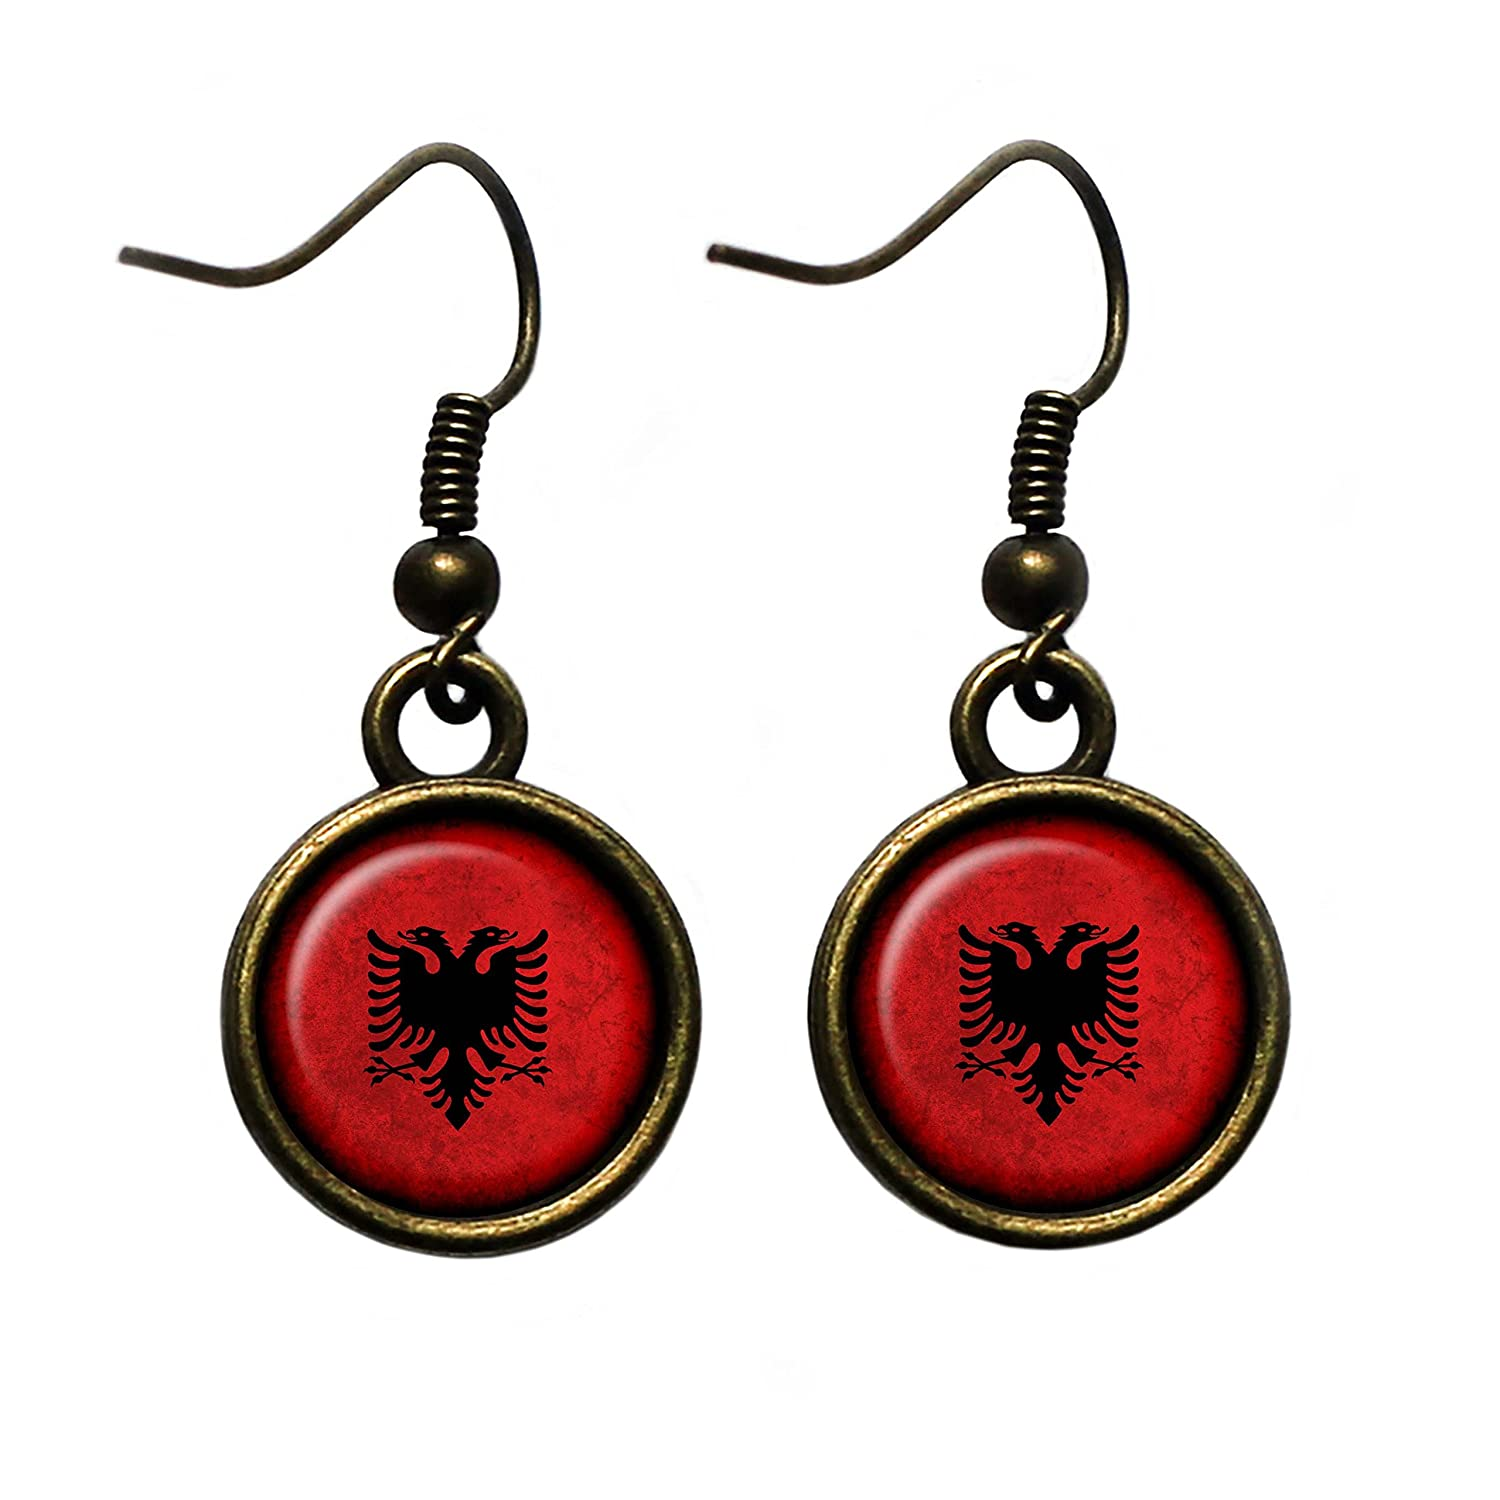 Albania Albanian Flag Antique Bronze Earrings